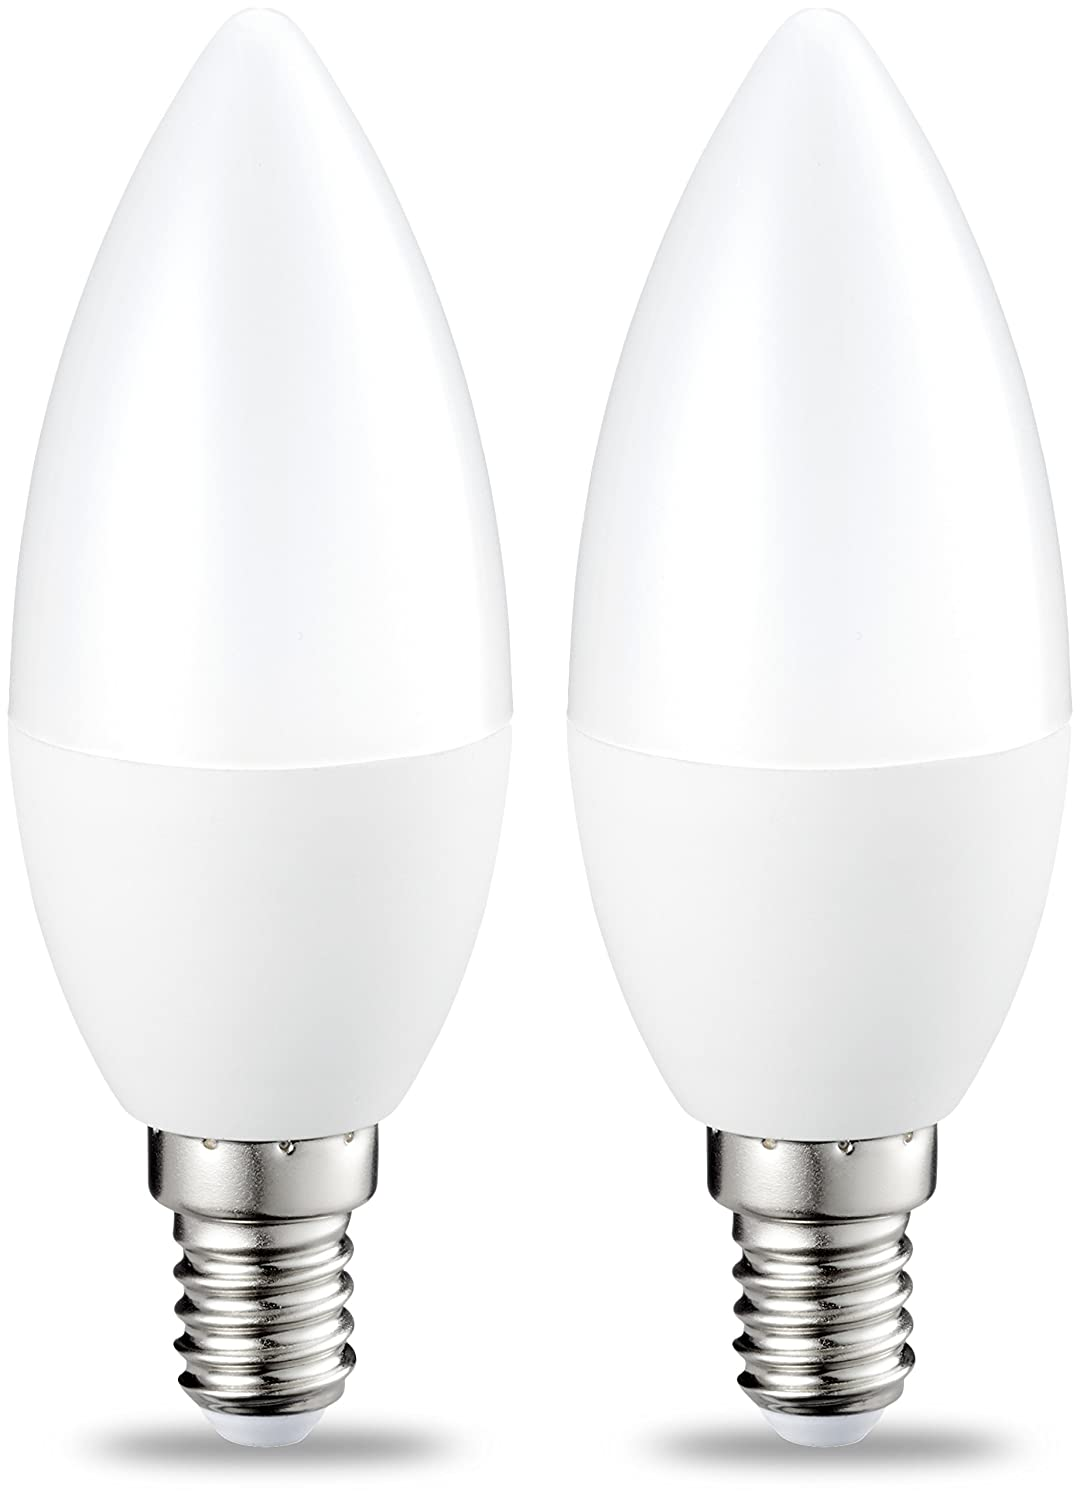 Basics - Bombilla LED E14, 5,5 W equivalente a 40 W, 470 lú menes, no regulable - 2 unidades 470 lúmenes 40W B35 E14 WW FR ND 2PK